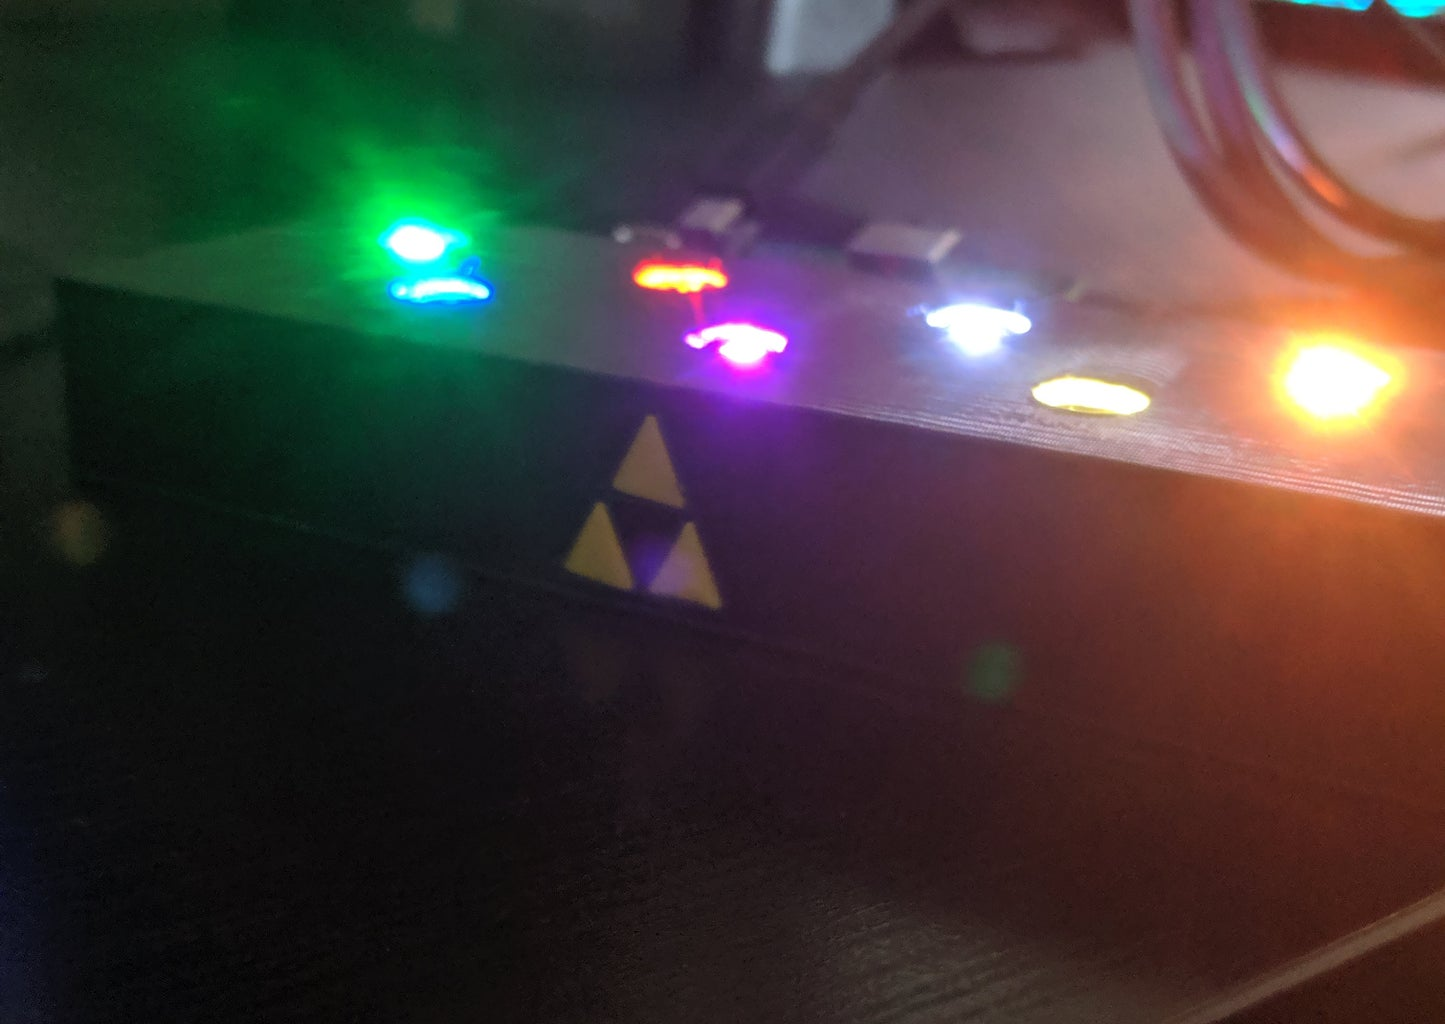 Attach the LEDs to the Base